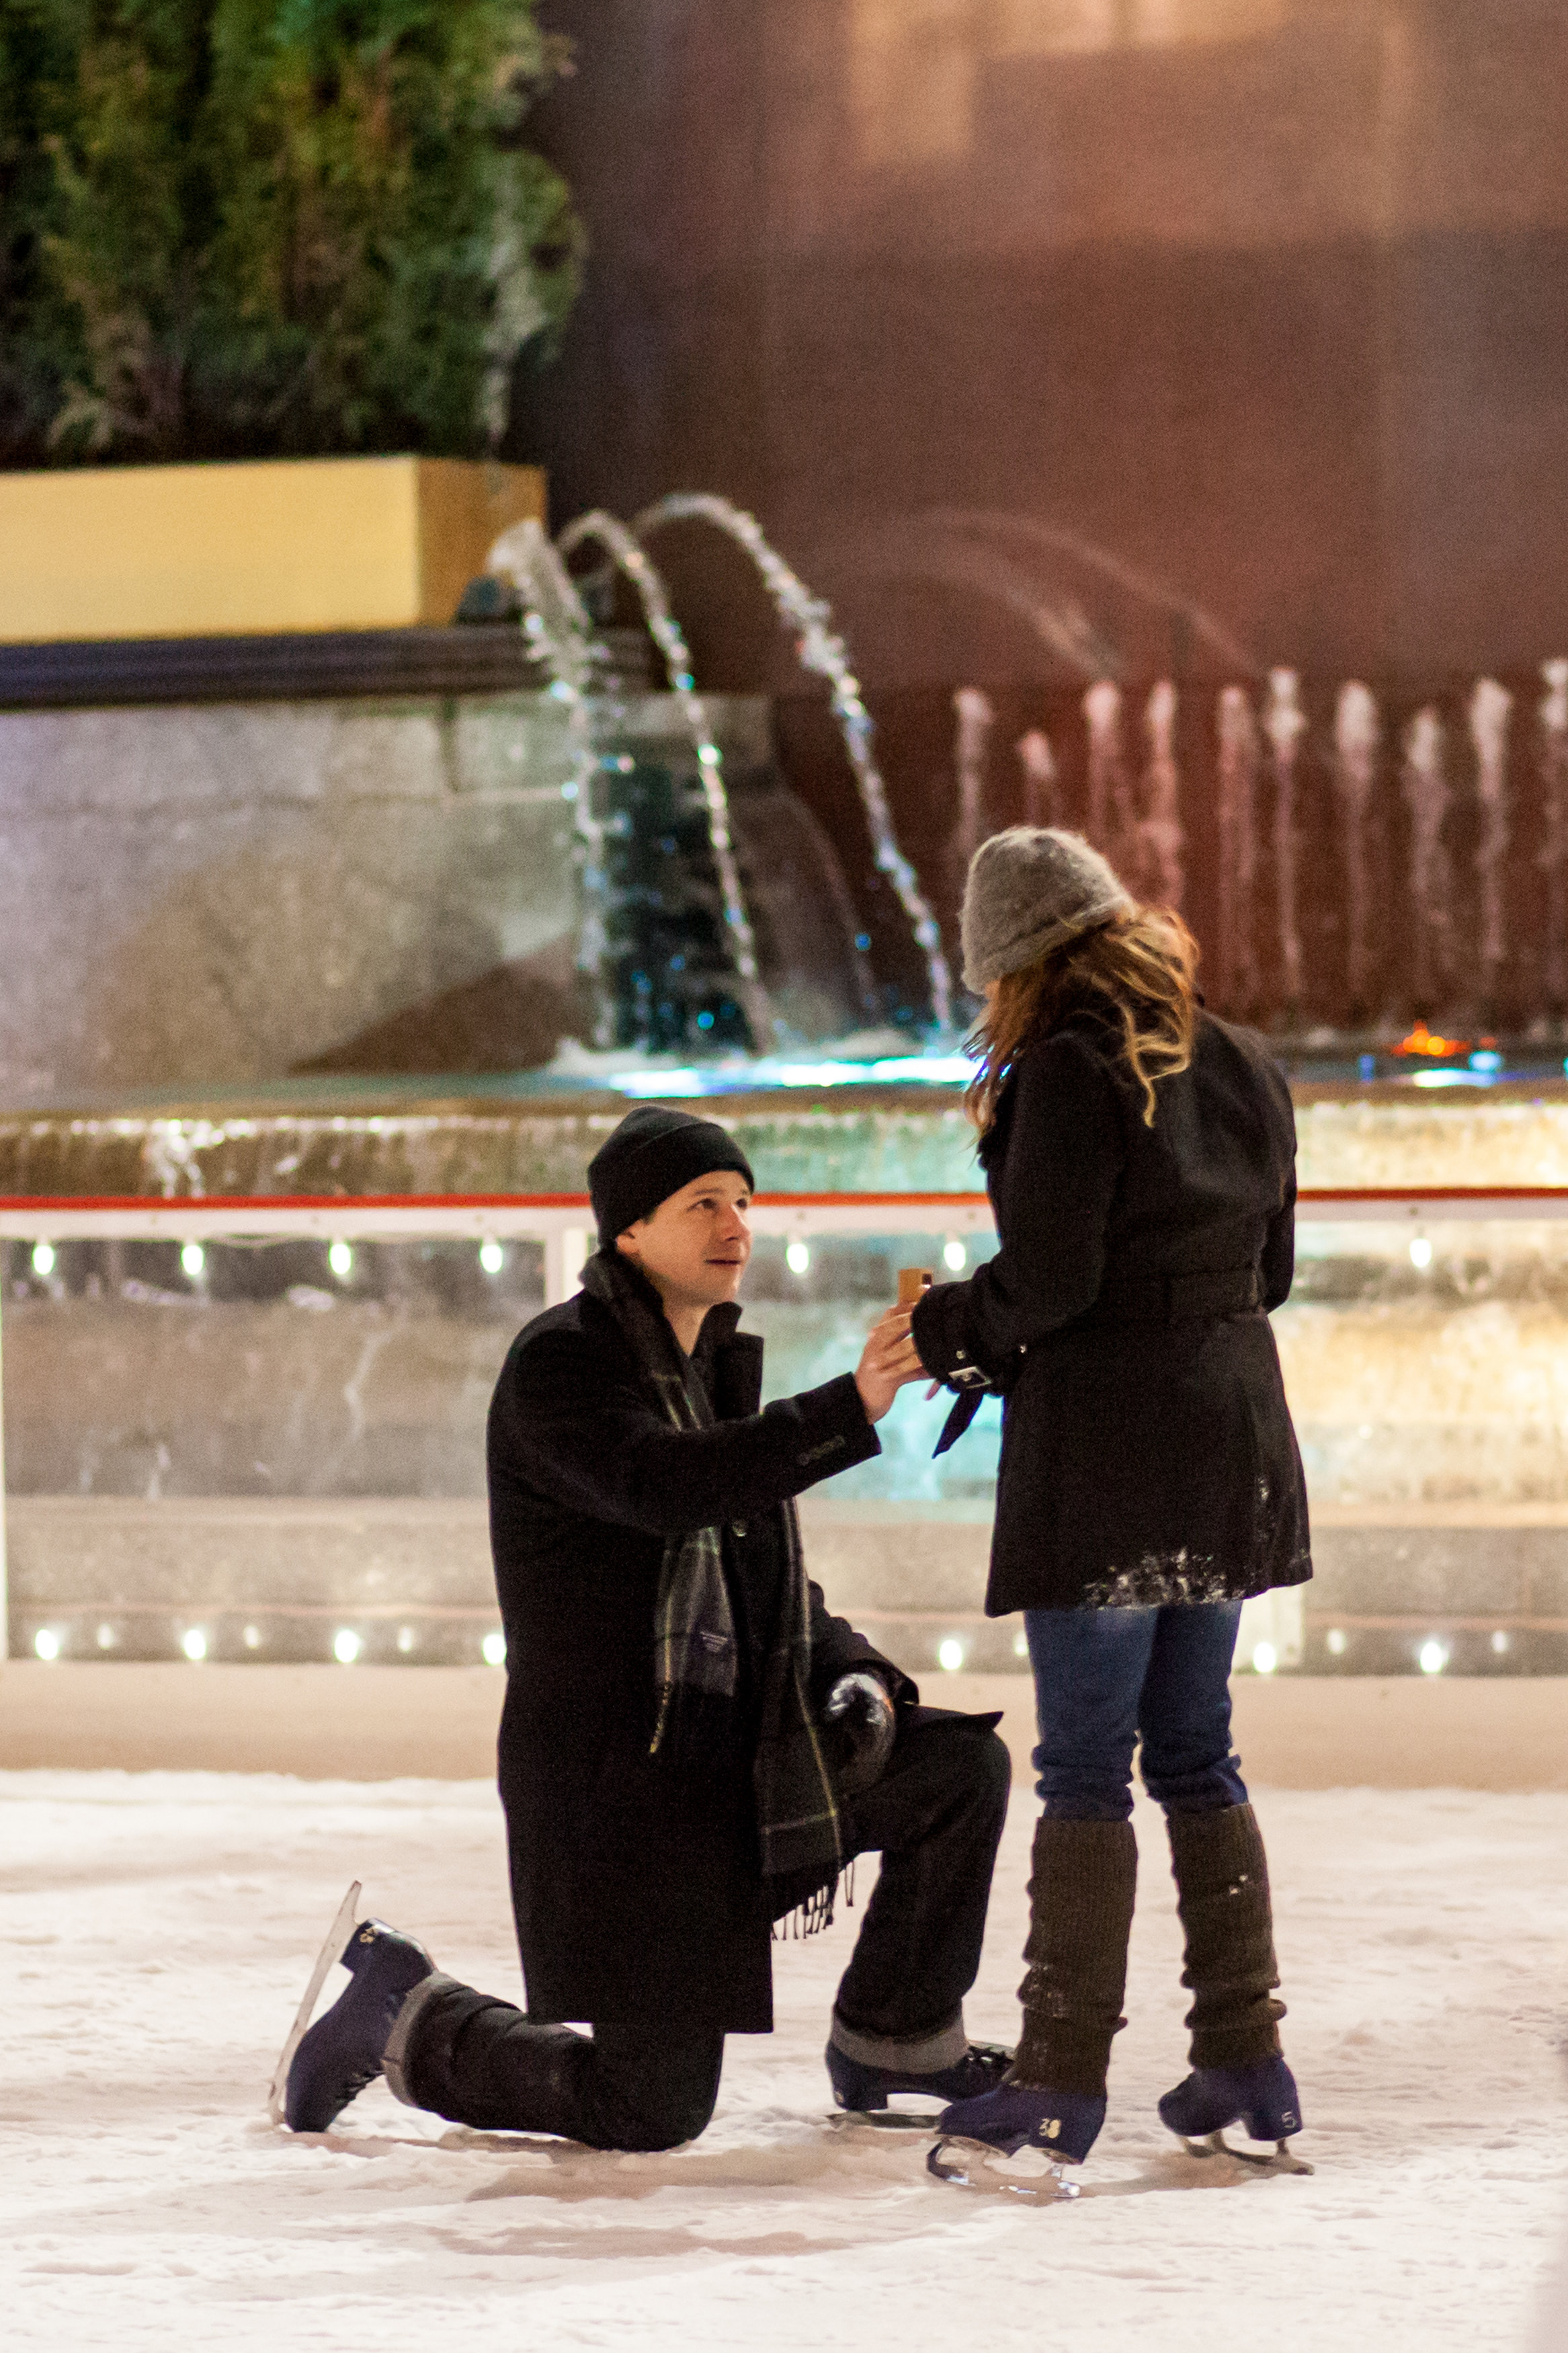 Image 6 of Christmas Day Proposal at Rockefeller Plaza